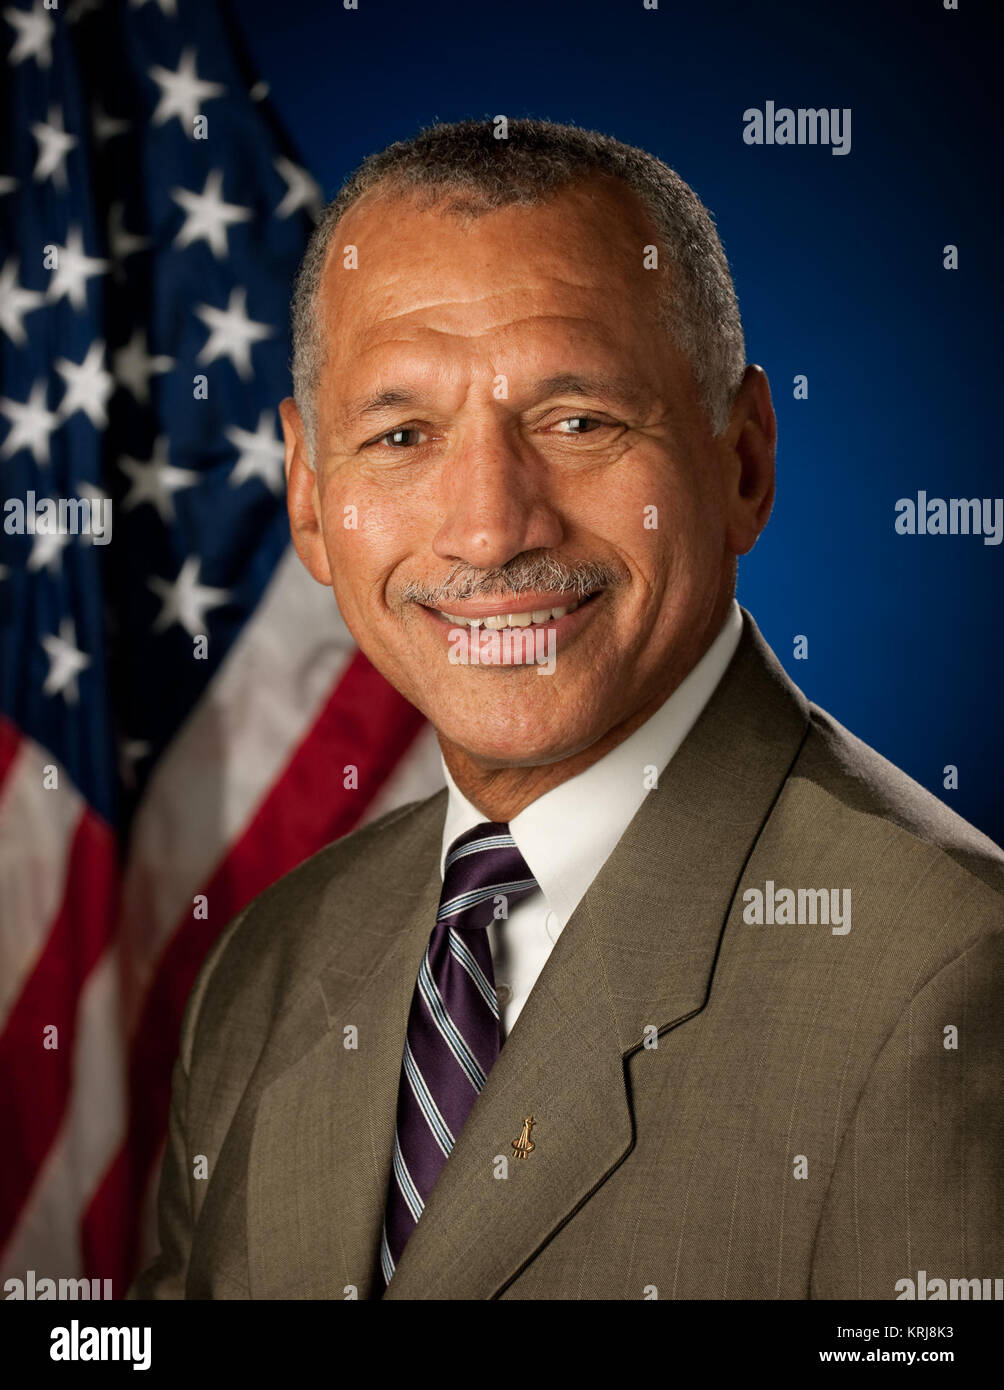 Portrait, Charles F. Bolden, Jr., Administrator, National Aeronautics and Space Administration (NASA). Washington, - Stock Image